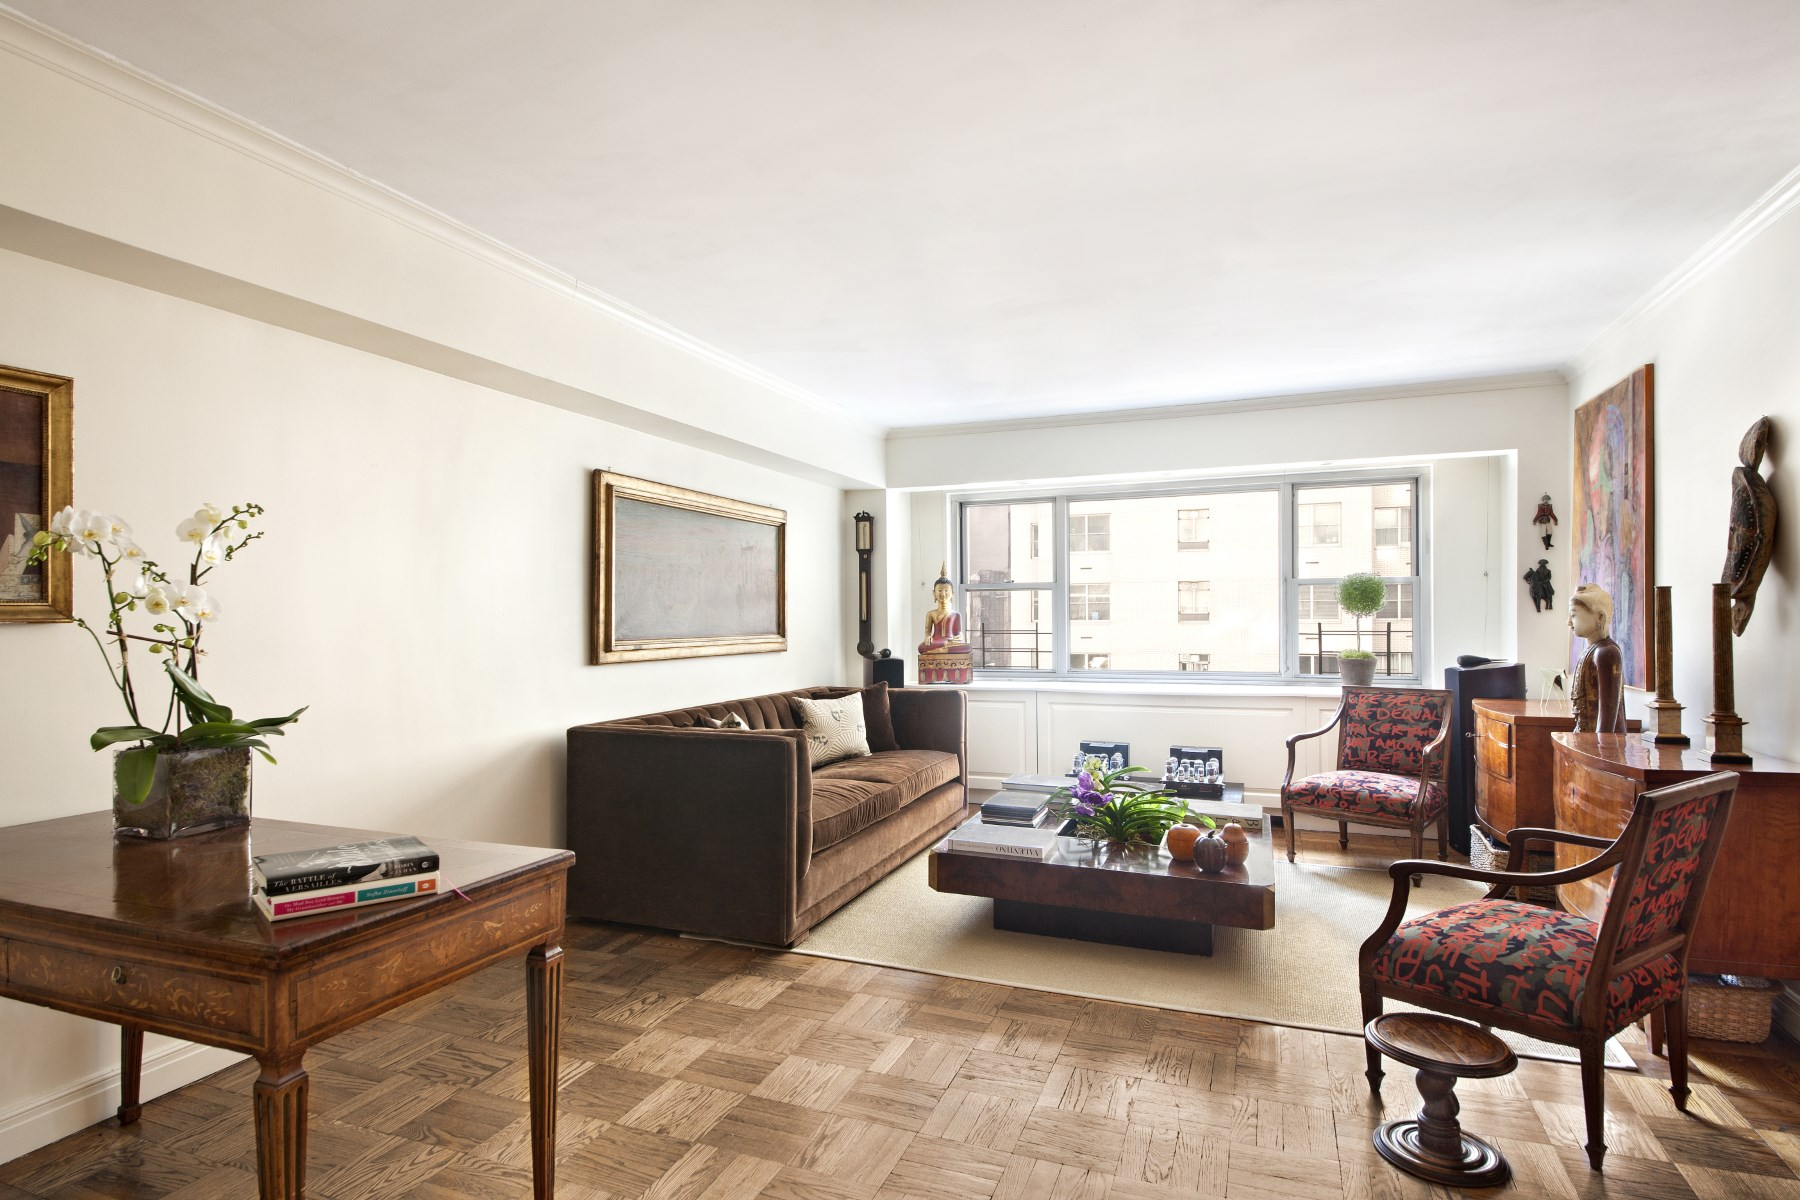 Co-op for Sale at 100 West 57th Street, Apt. 6EF 100 West 57th Street Apt 6ef New York, New York 10019 United States